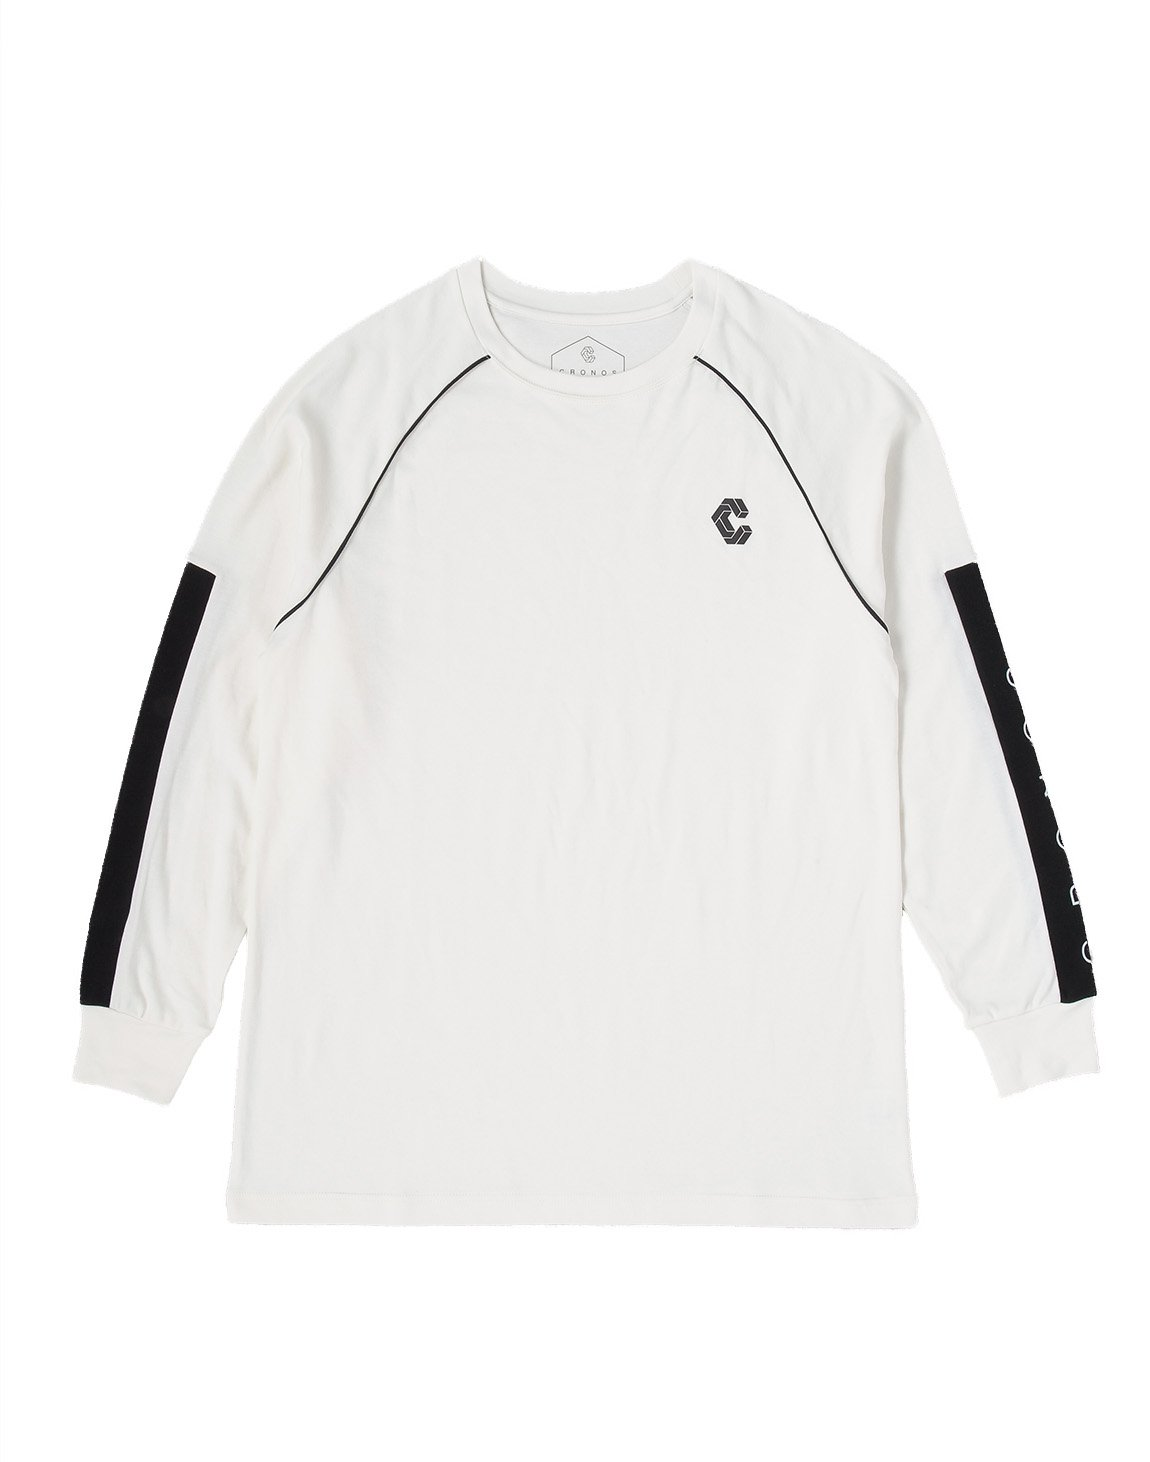 <img class='new_mark_img1' src='https://img.shop-pro.jp/img/new/icons1.gif' style='border:none;display:inline;margin:0px;padding:0px;width:auto;' />CRONOS ARM LOGO LONG SLEEVE【WHITE】